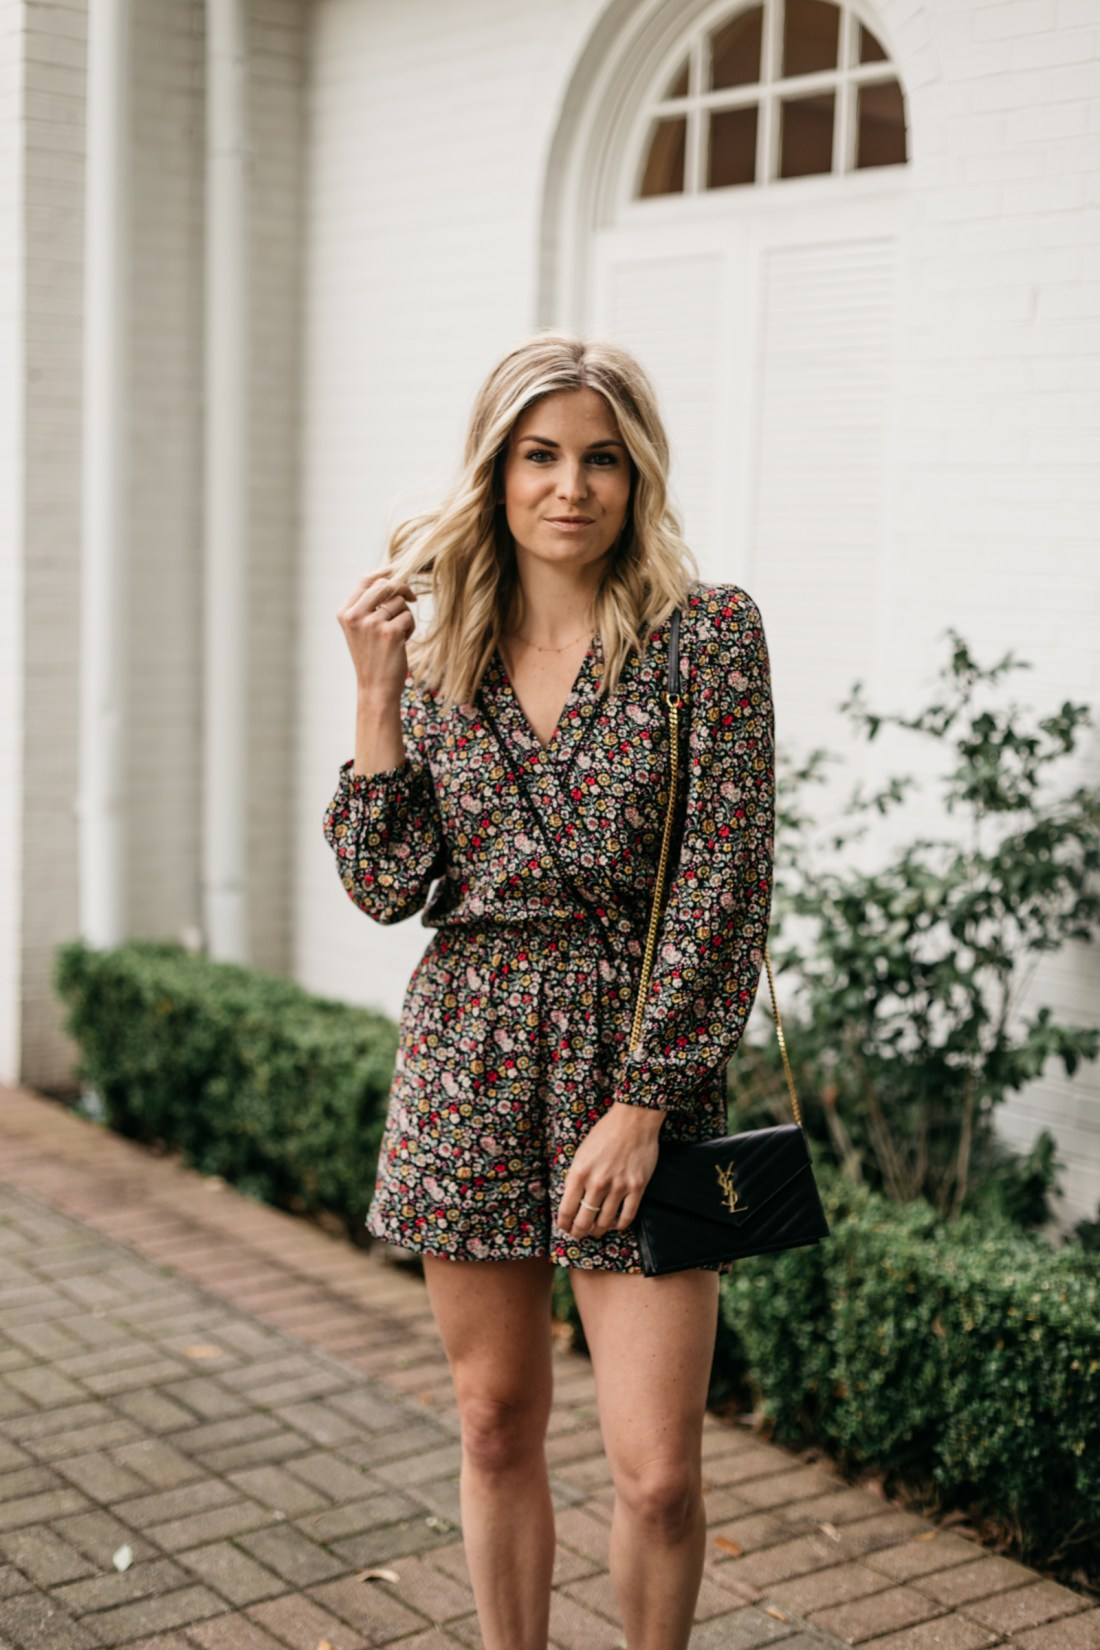 Brooke's outfit details: Floral Romper // YSL Crossbody